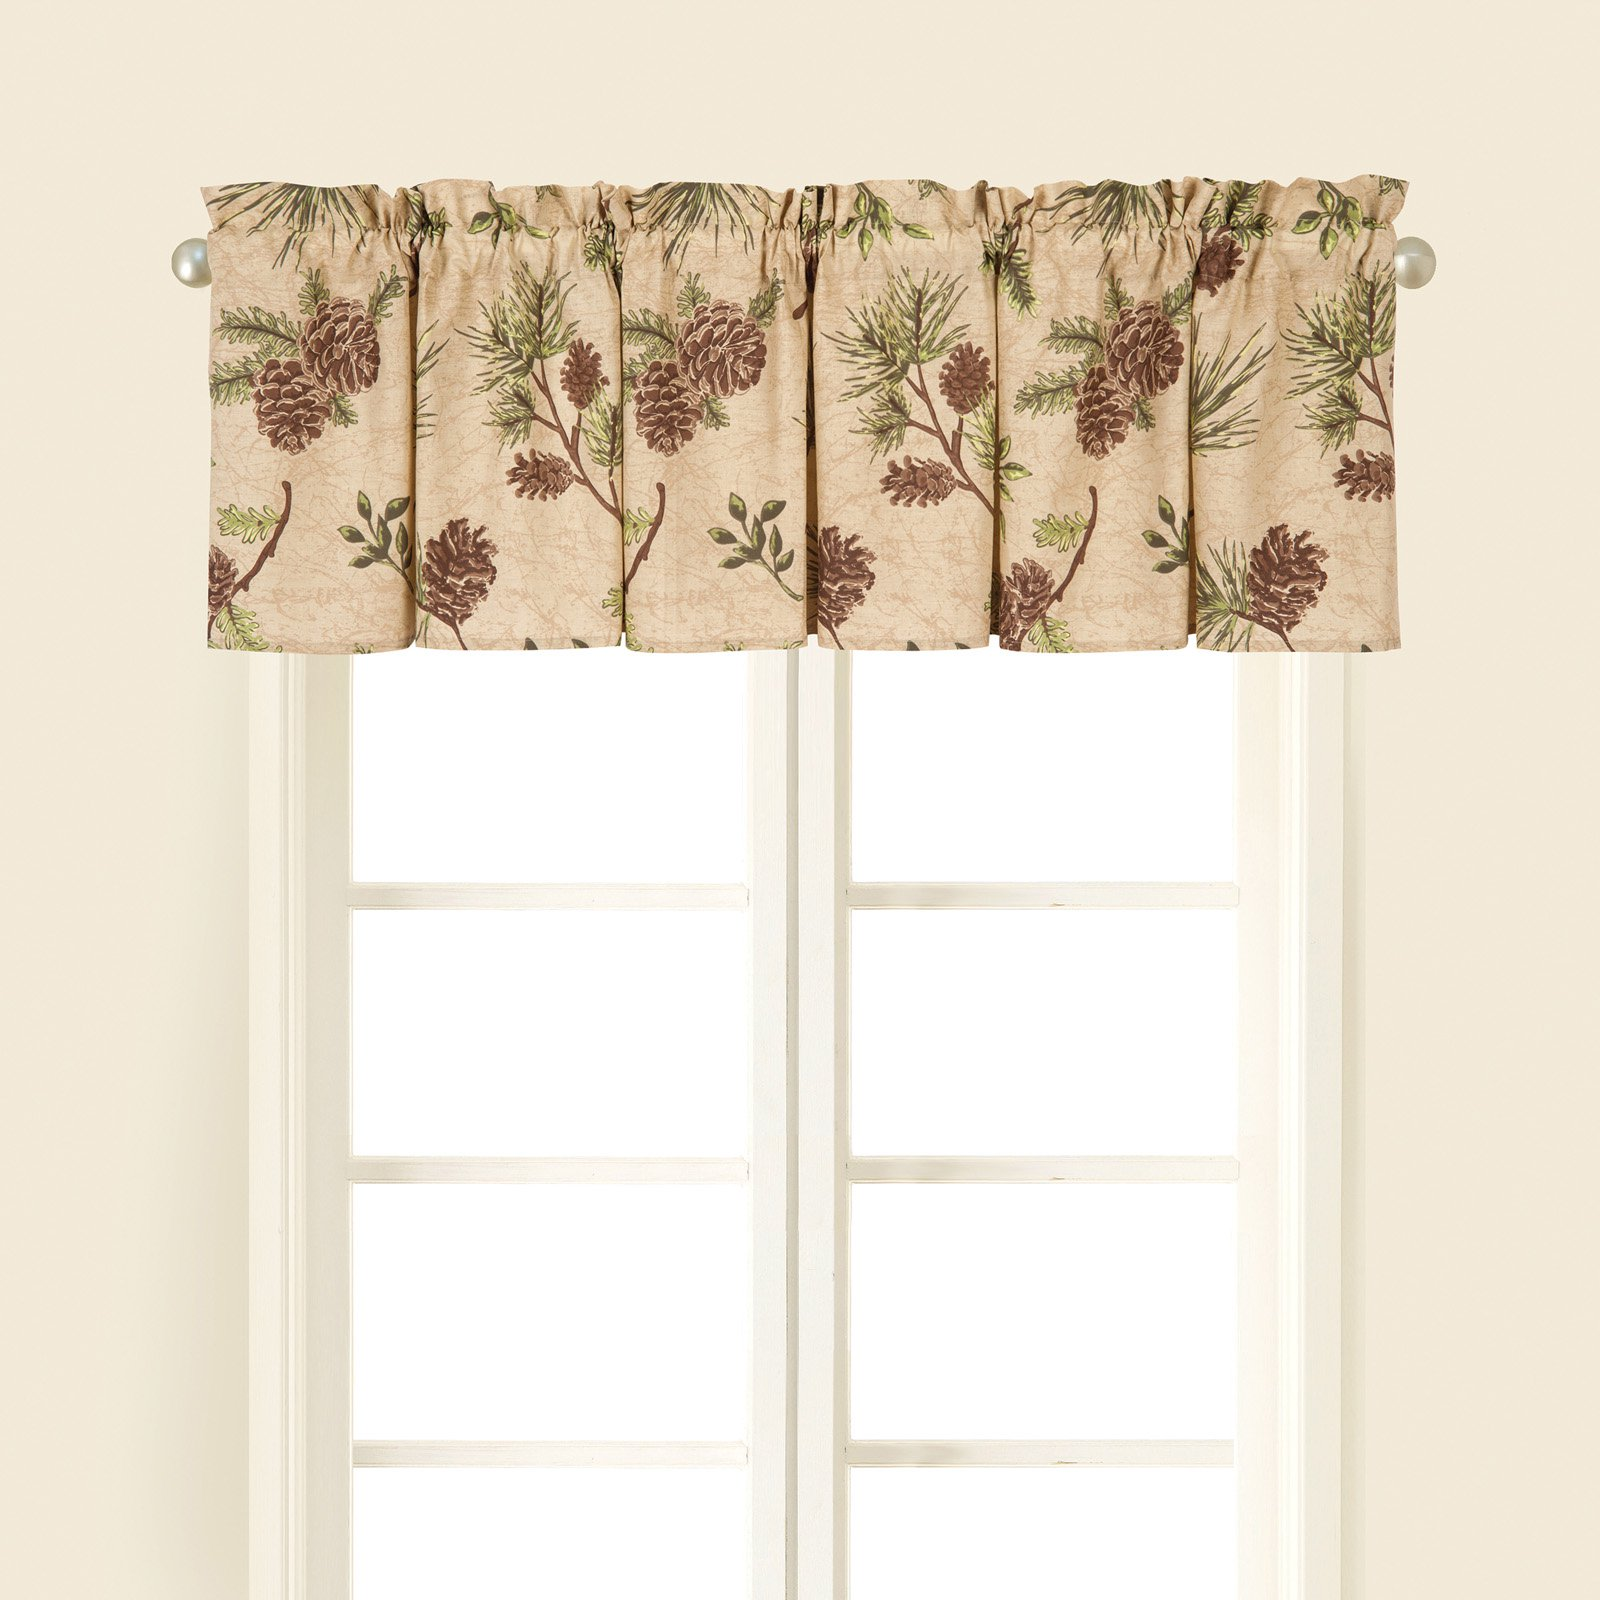 C F Home Woodland Retreat Tailored Valance Set Of 2 Valance Curtains Valances For Living Room Window Valance